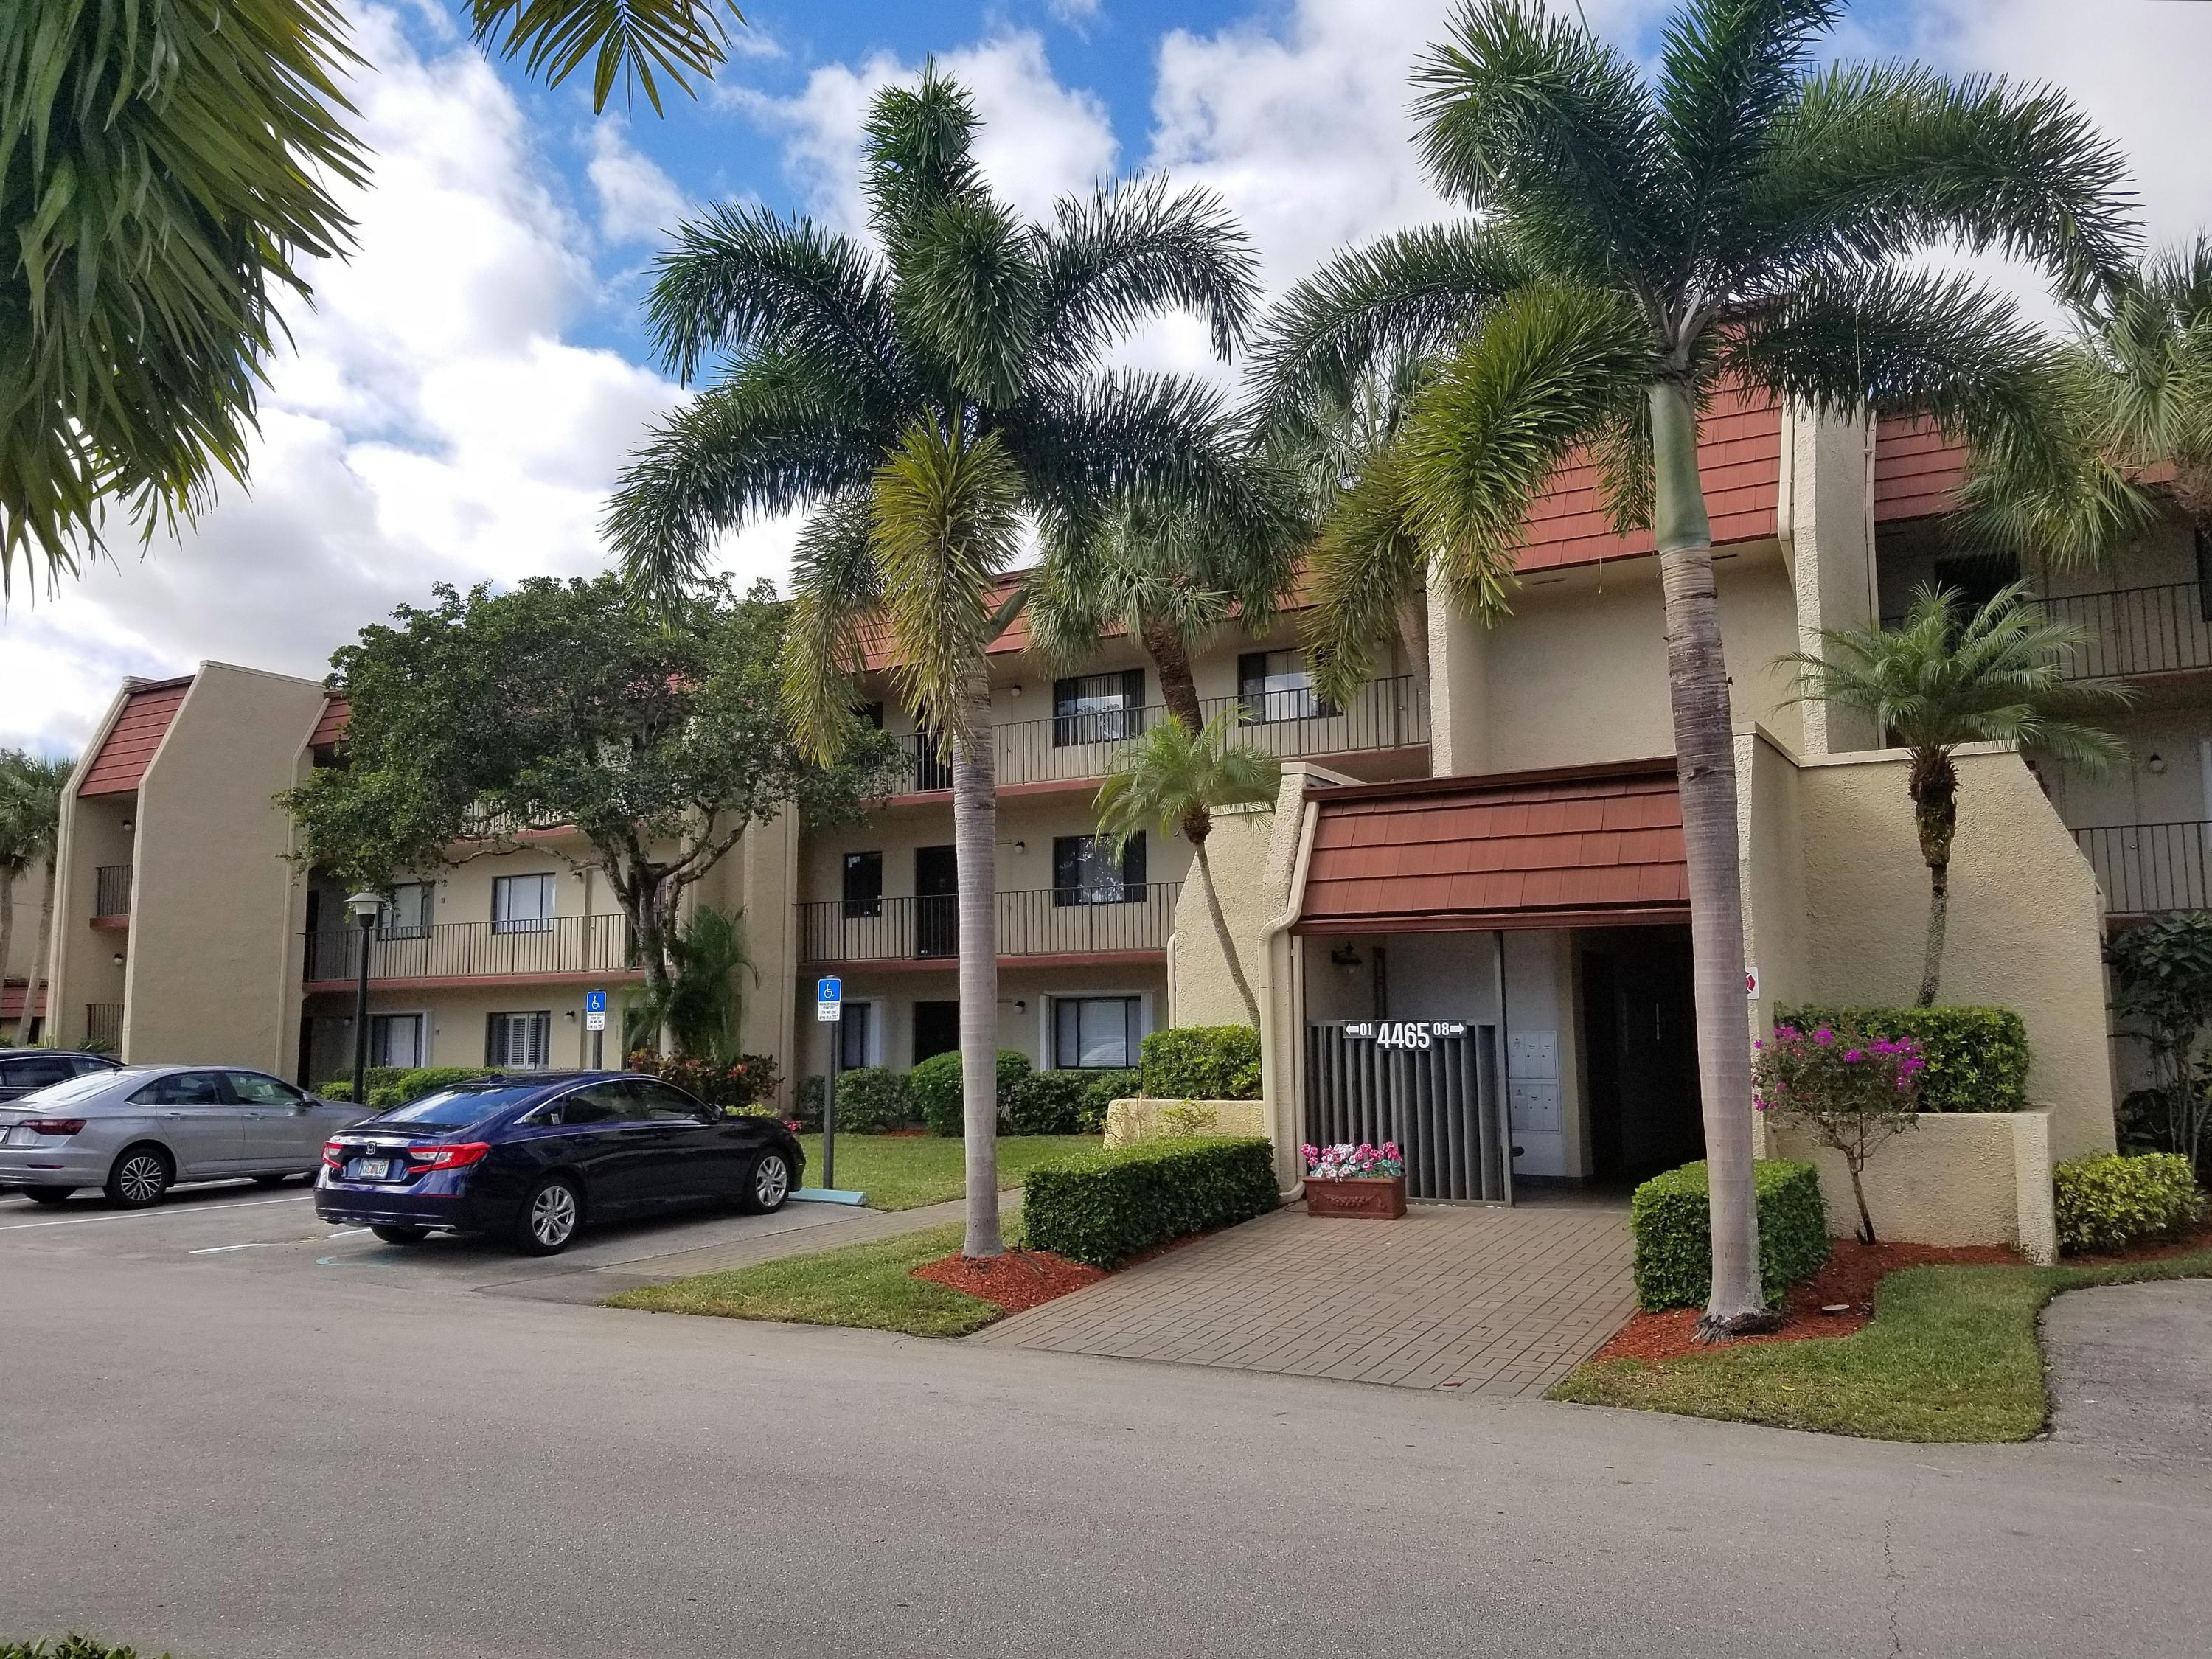 Home for sale in FOUNTAINS OF PALM BEACH CONDO 3 Lake Worth Florida